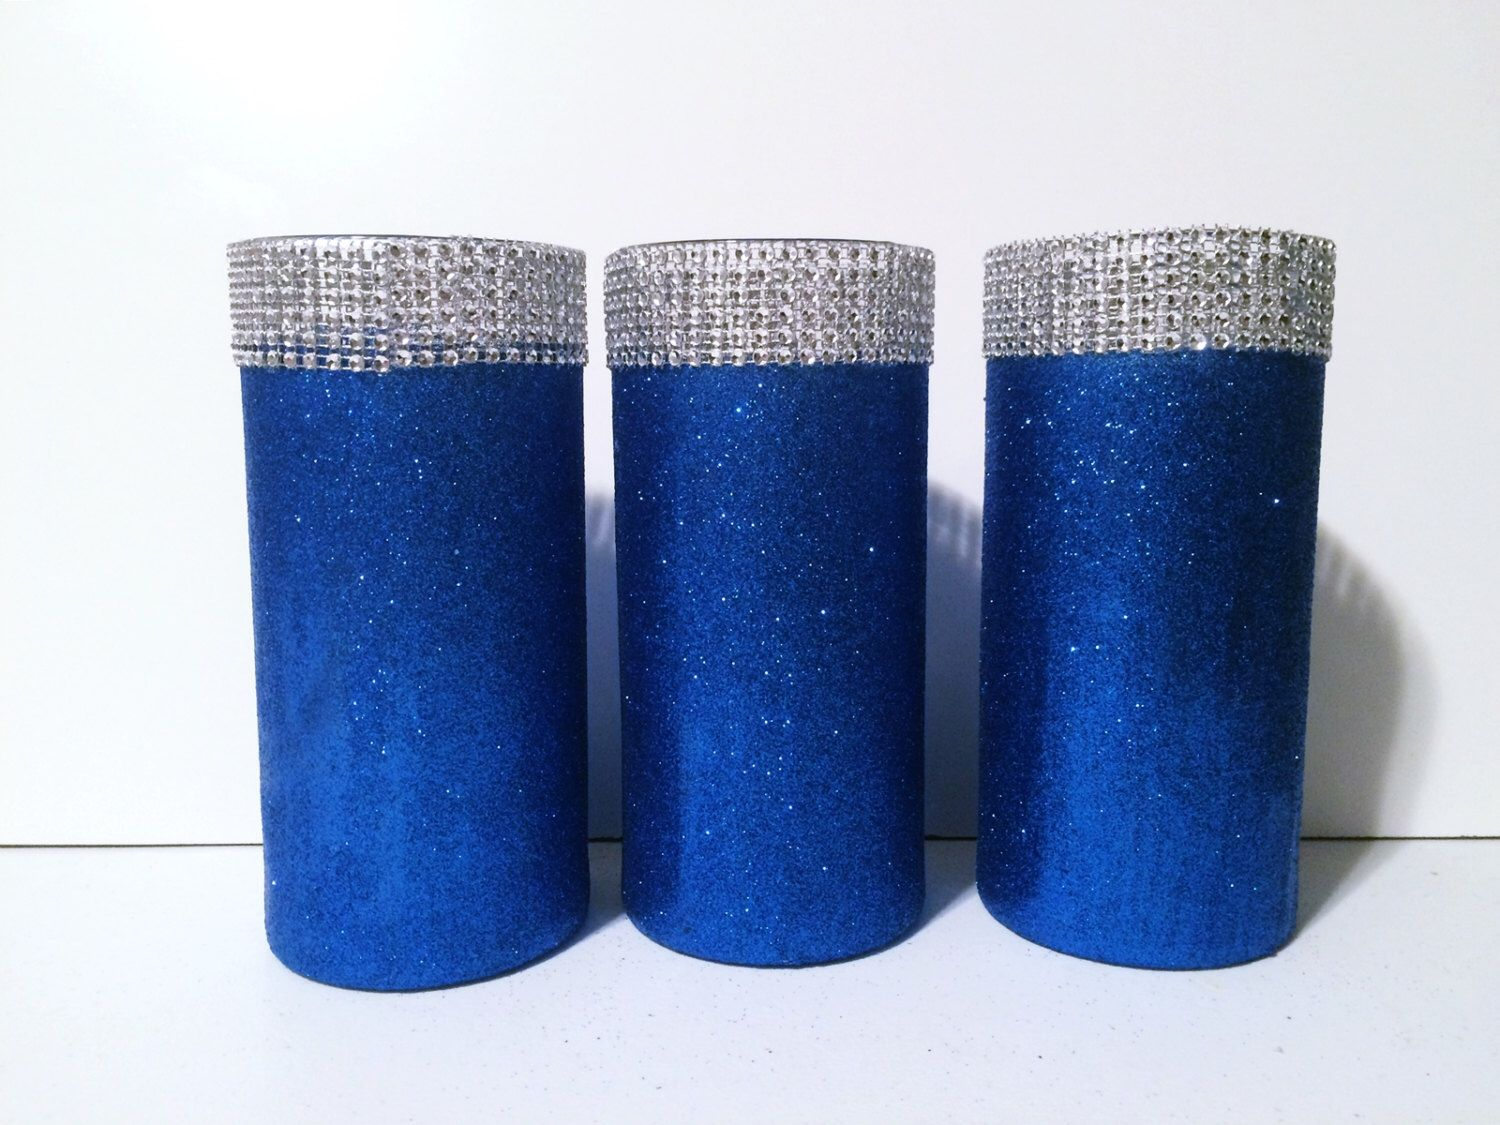 Wedding decorations with royal blue  Pin by jj on Party ideas  Pinterest  Vase centerpieces Wedding